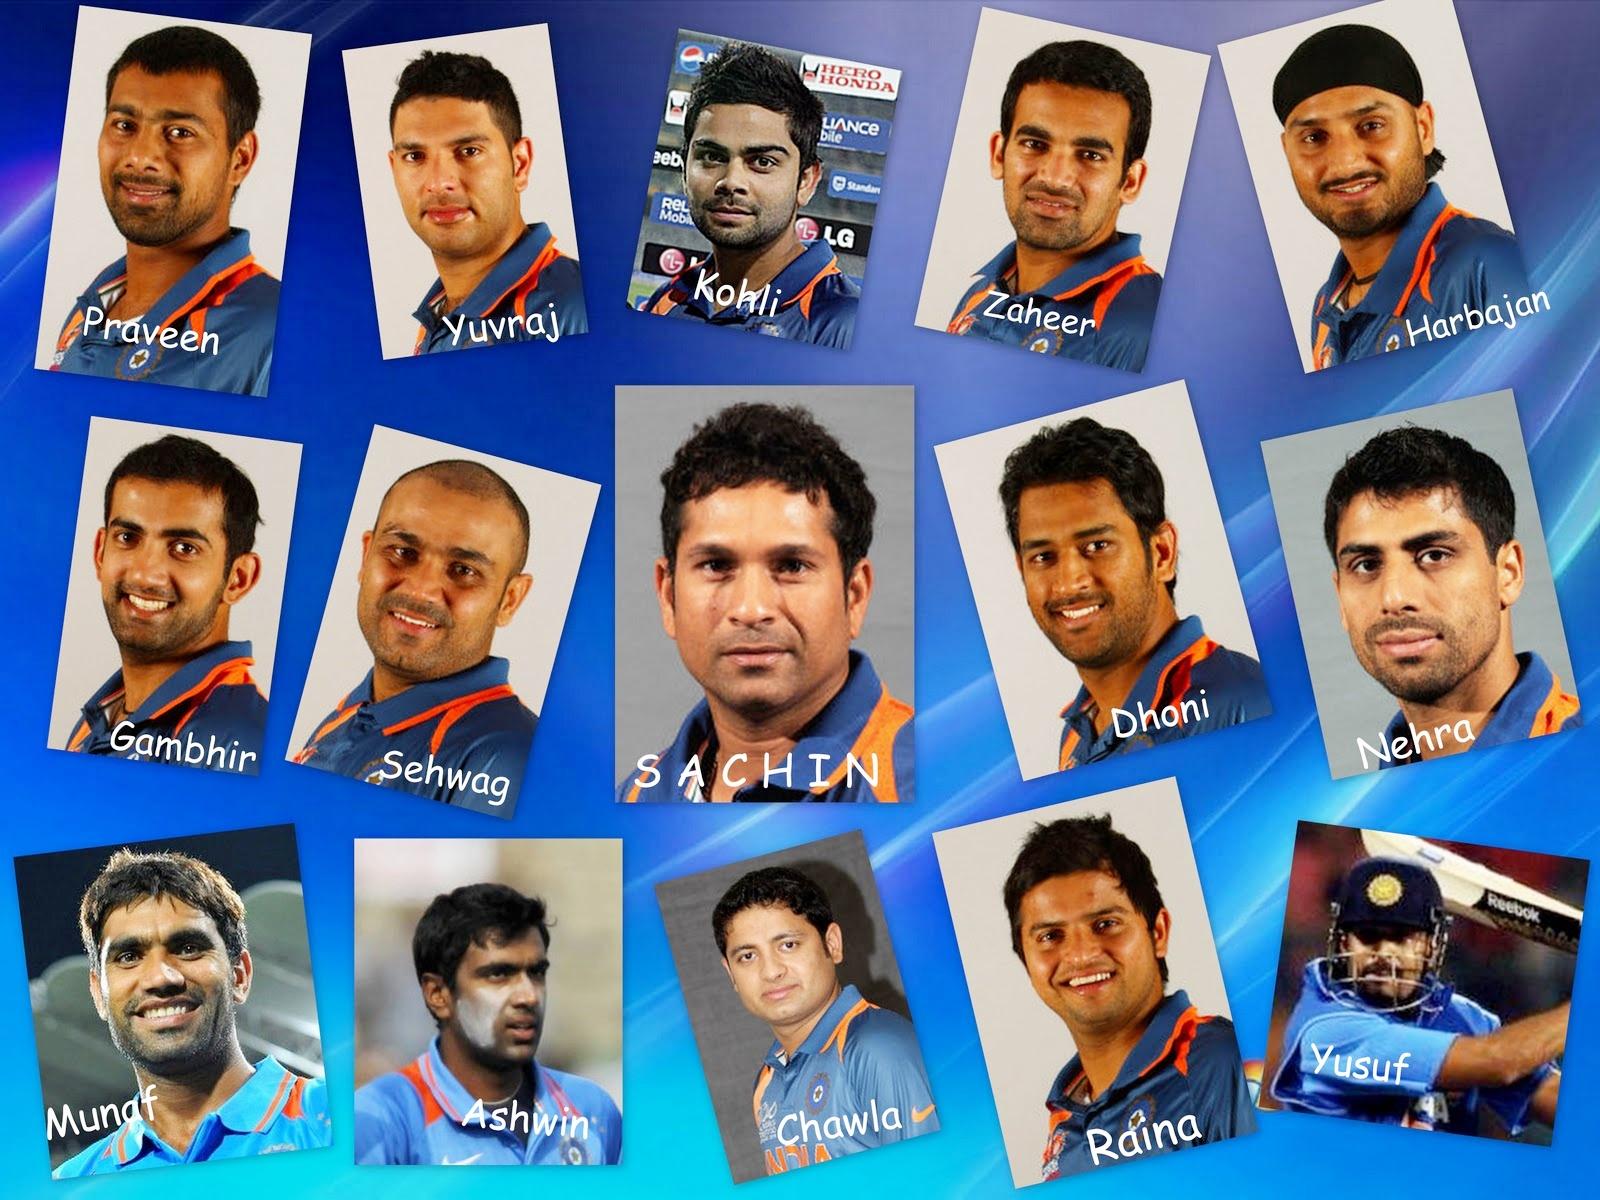 2011 Team India World Cup 667.03 Kb